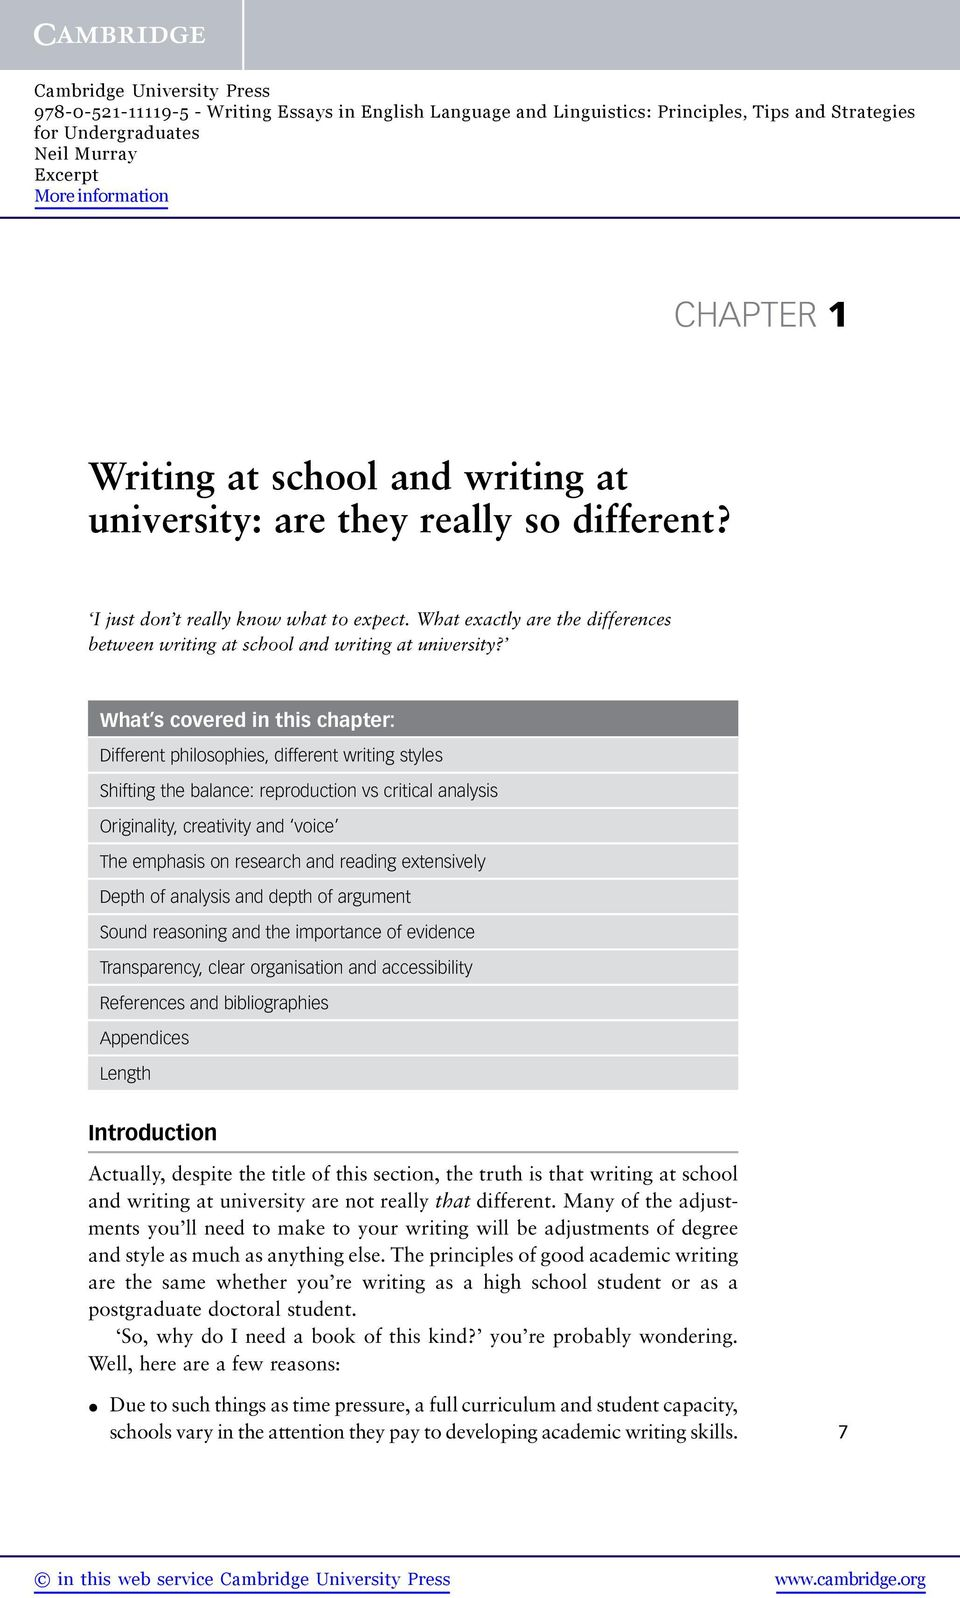 What s covered in this chapter: Different philosophies, different writing styles Shifting the balance: reproduction vs critical analysis Originality, creativity and voice The emphasis on research and